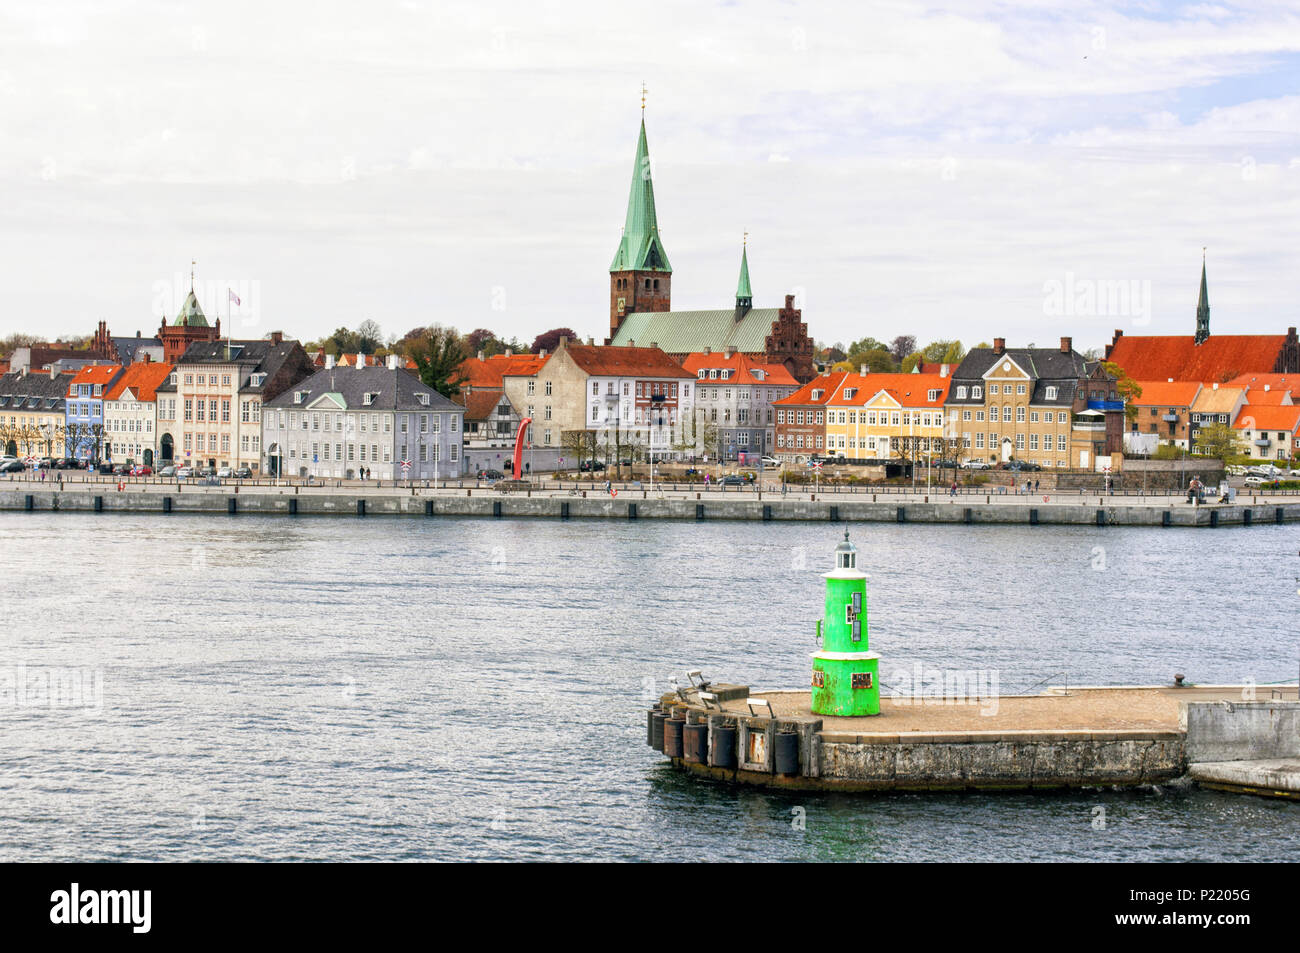 The harbor of the Scandinavian town of Helsingor. Denmark. - Stock Image